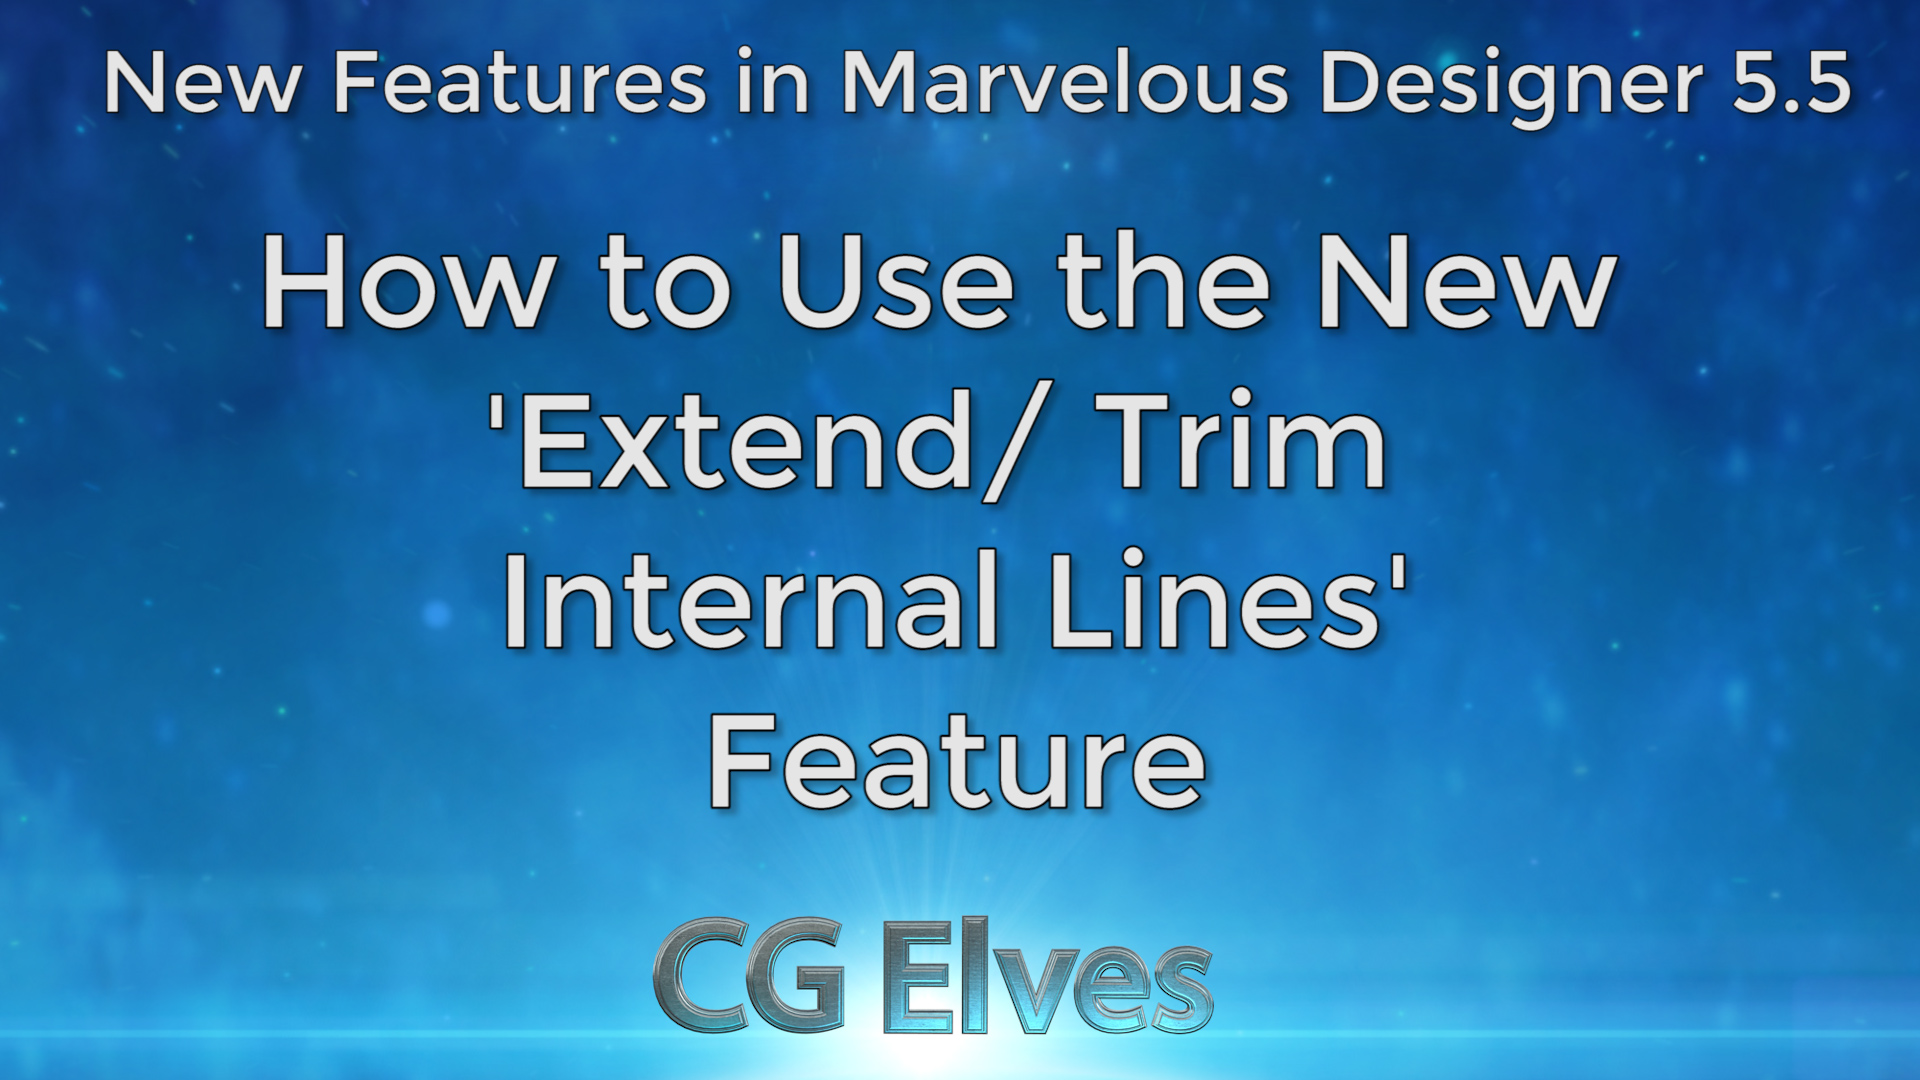 Marvelous Designer 5 beginner tutorial how to extend and trim internal lines